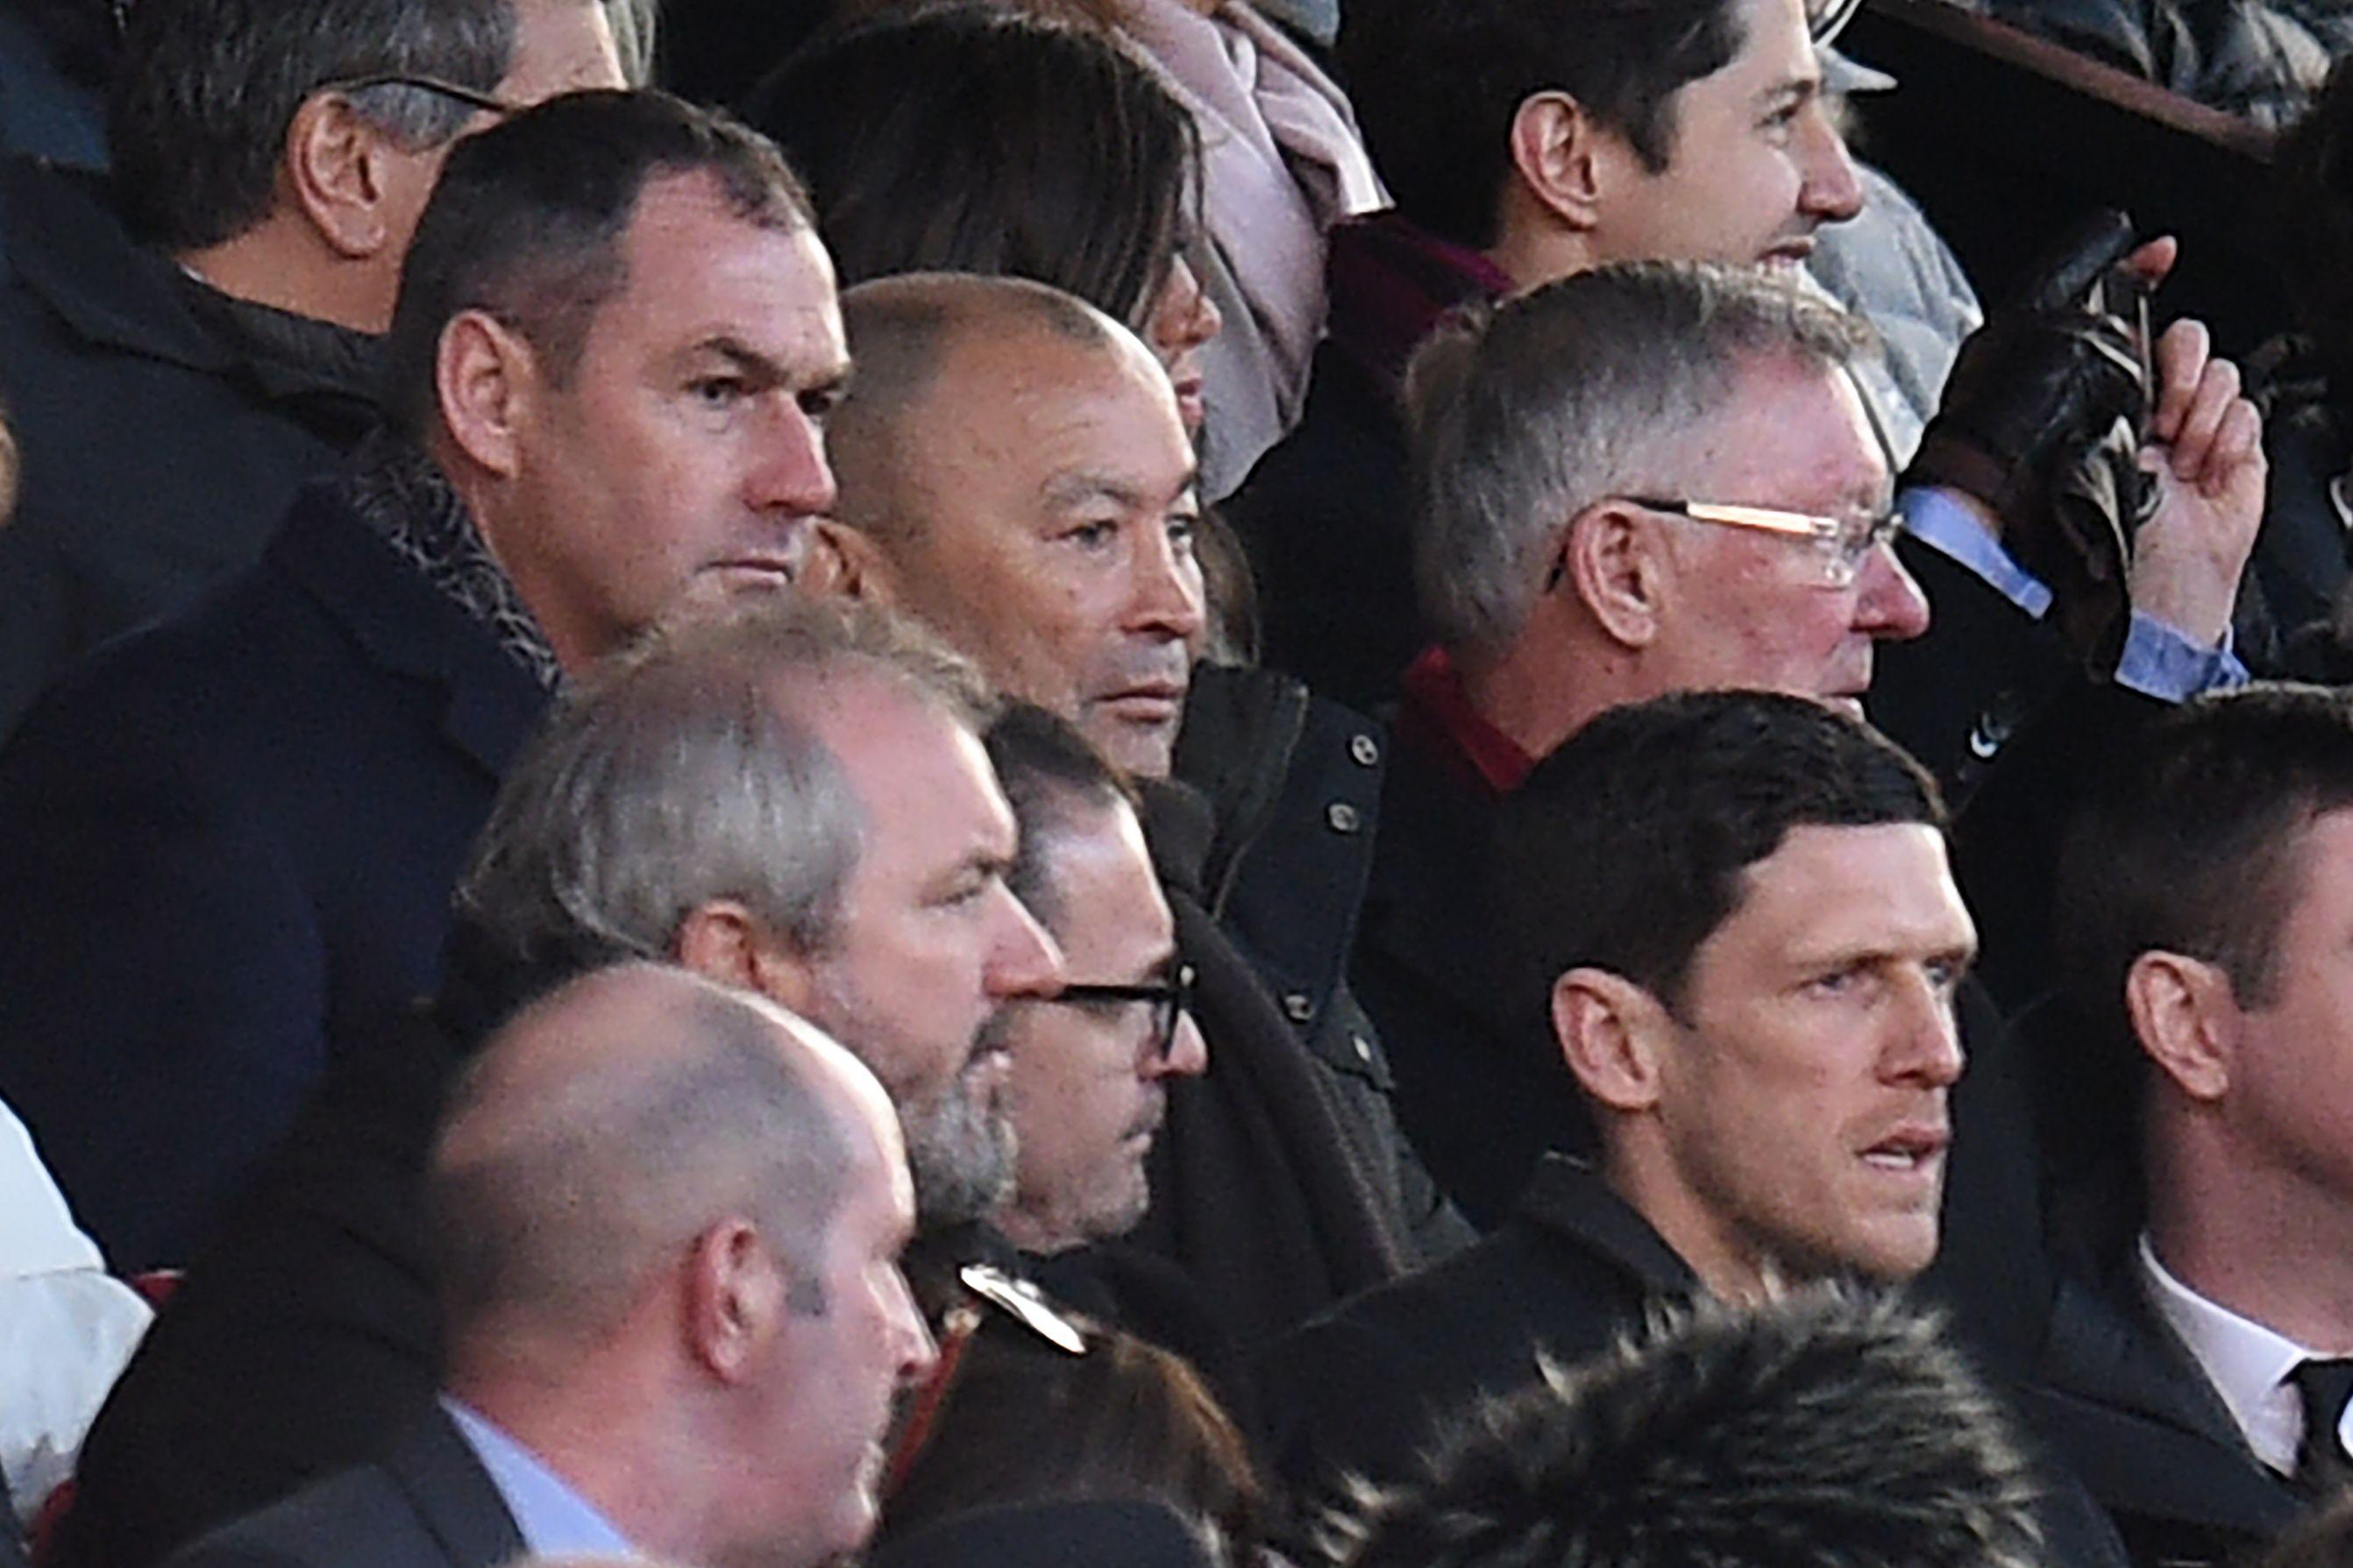 Jones then went to watch Manchester United's 2-1 win over Chelsea at Old Trafford